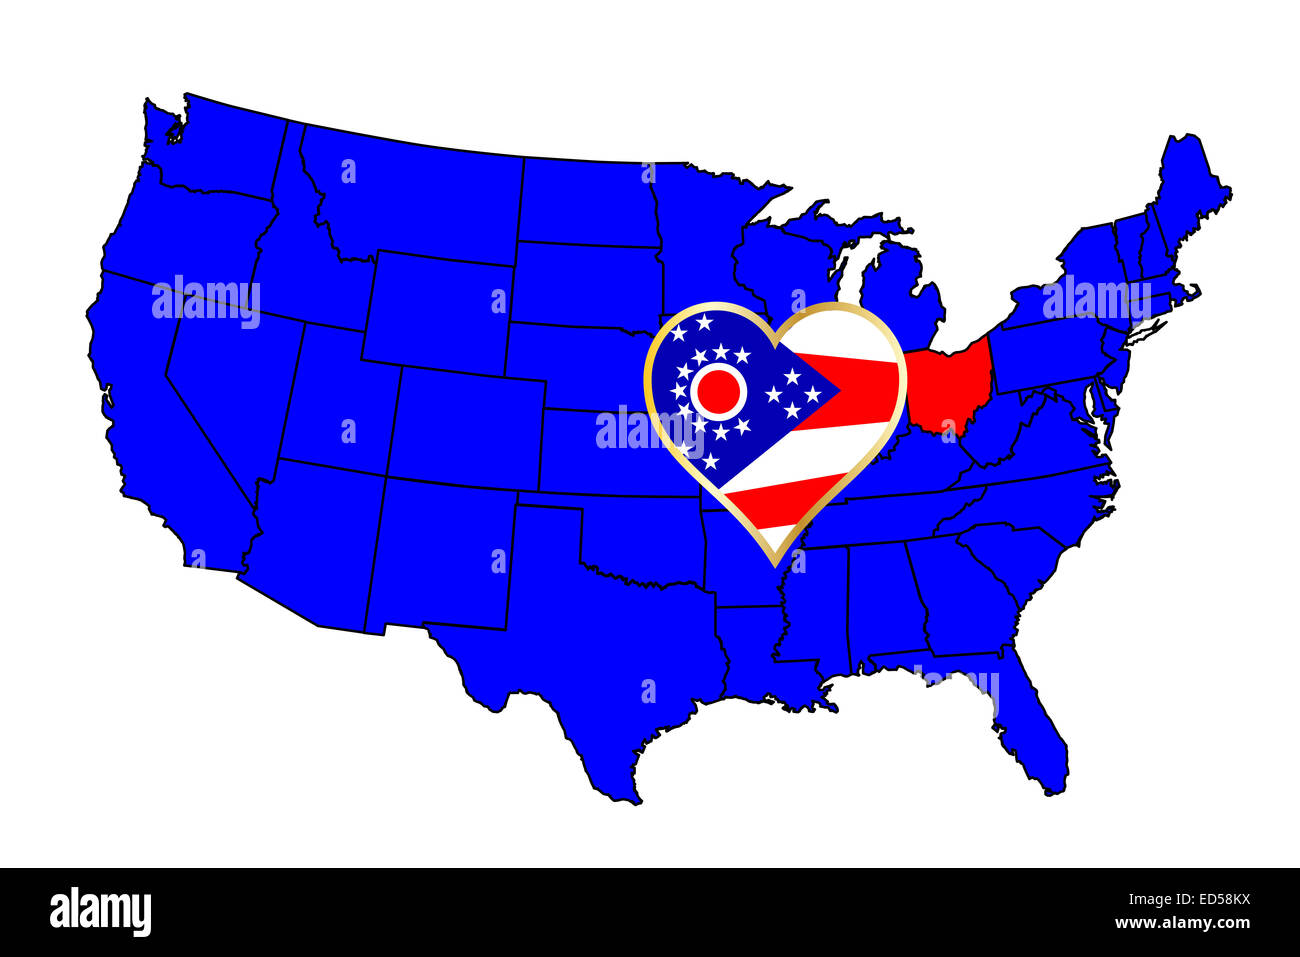 Ohio Outline Stock Photos & Ohio Outline Stock Images - Page ...